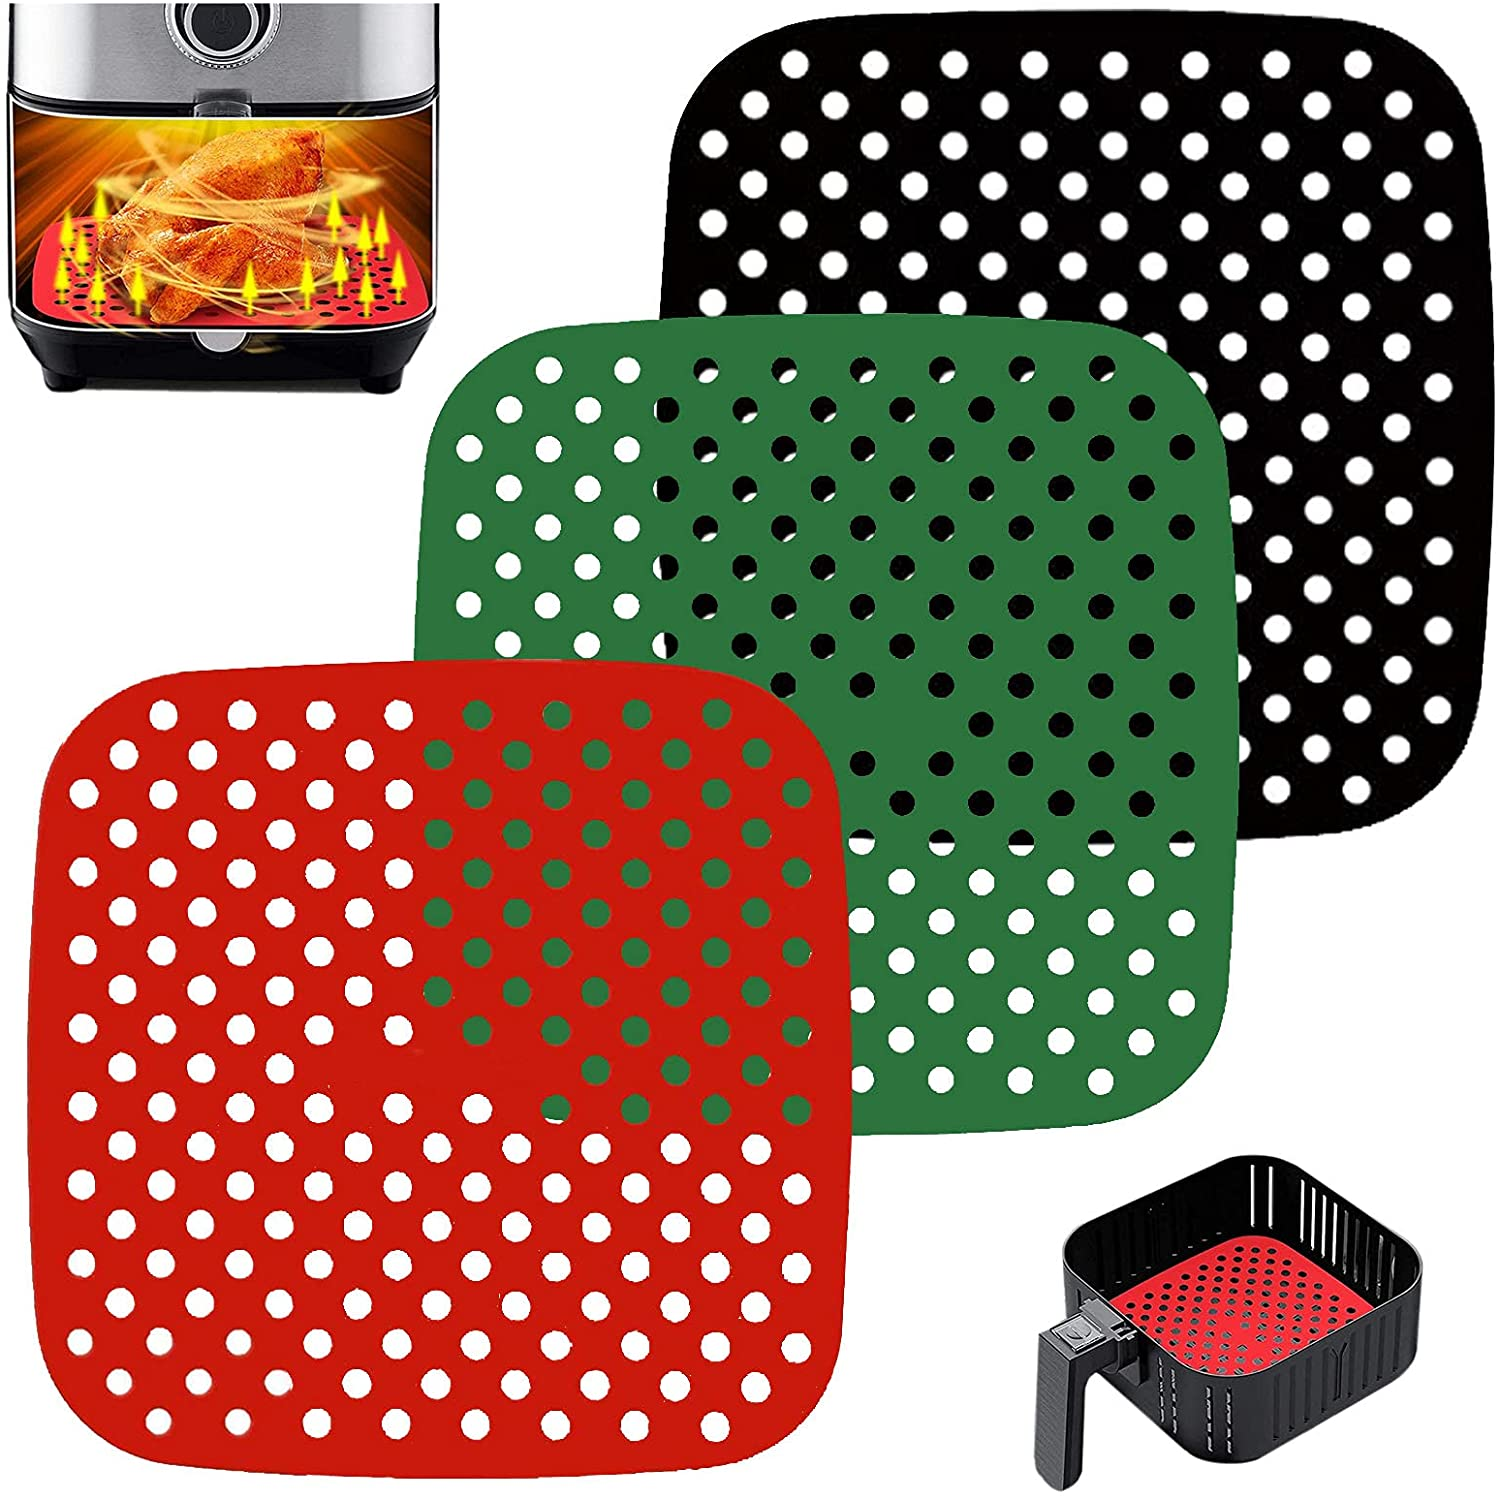 3 PCS Reusable Air Fryer Liners,Square Air Fryer Silicone Liners for Air Fryer Basket,Non-Stick Air Fryer Accessories Basket Mats Replacement for Parchment Paper, BPA Free. (Black Red Green, 8.5 in)